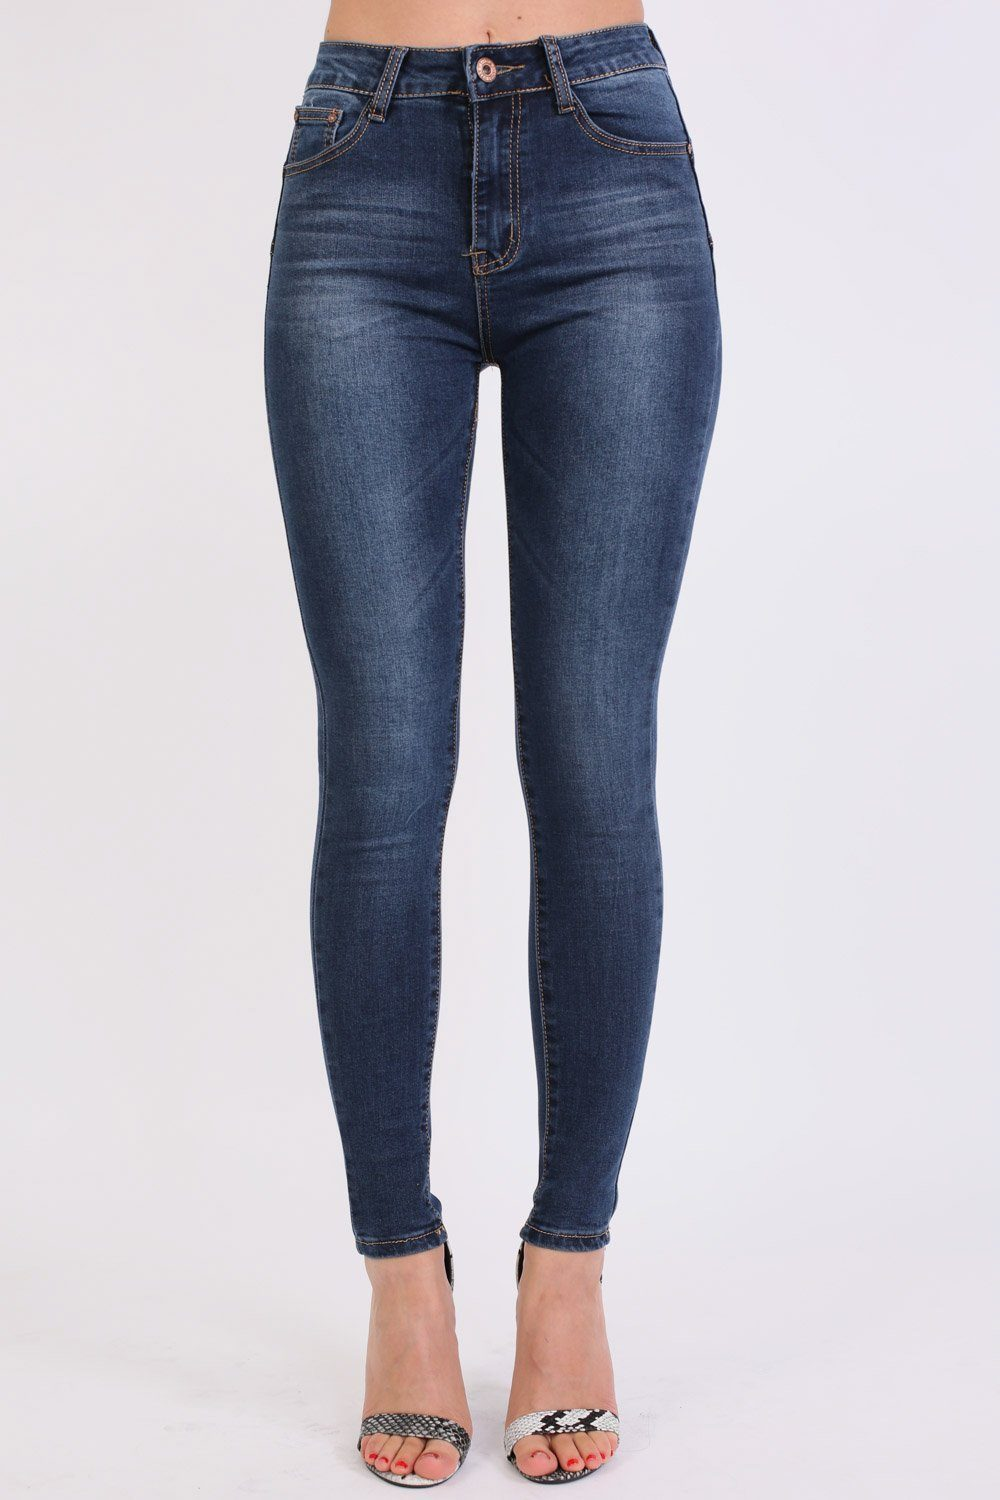 High Waisted Skinny Jeans in Dark Denim 0